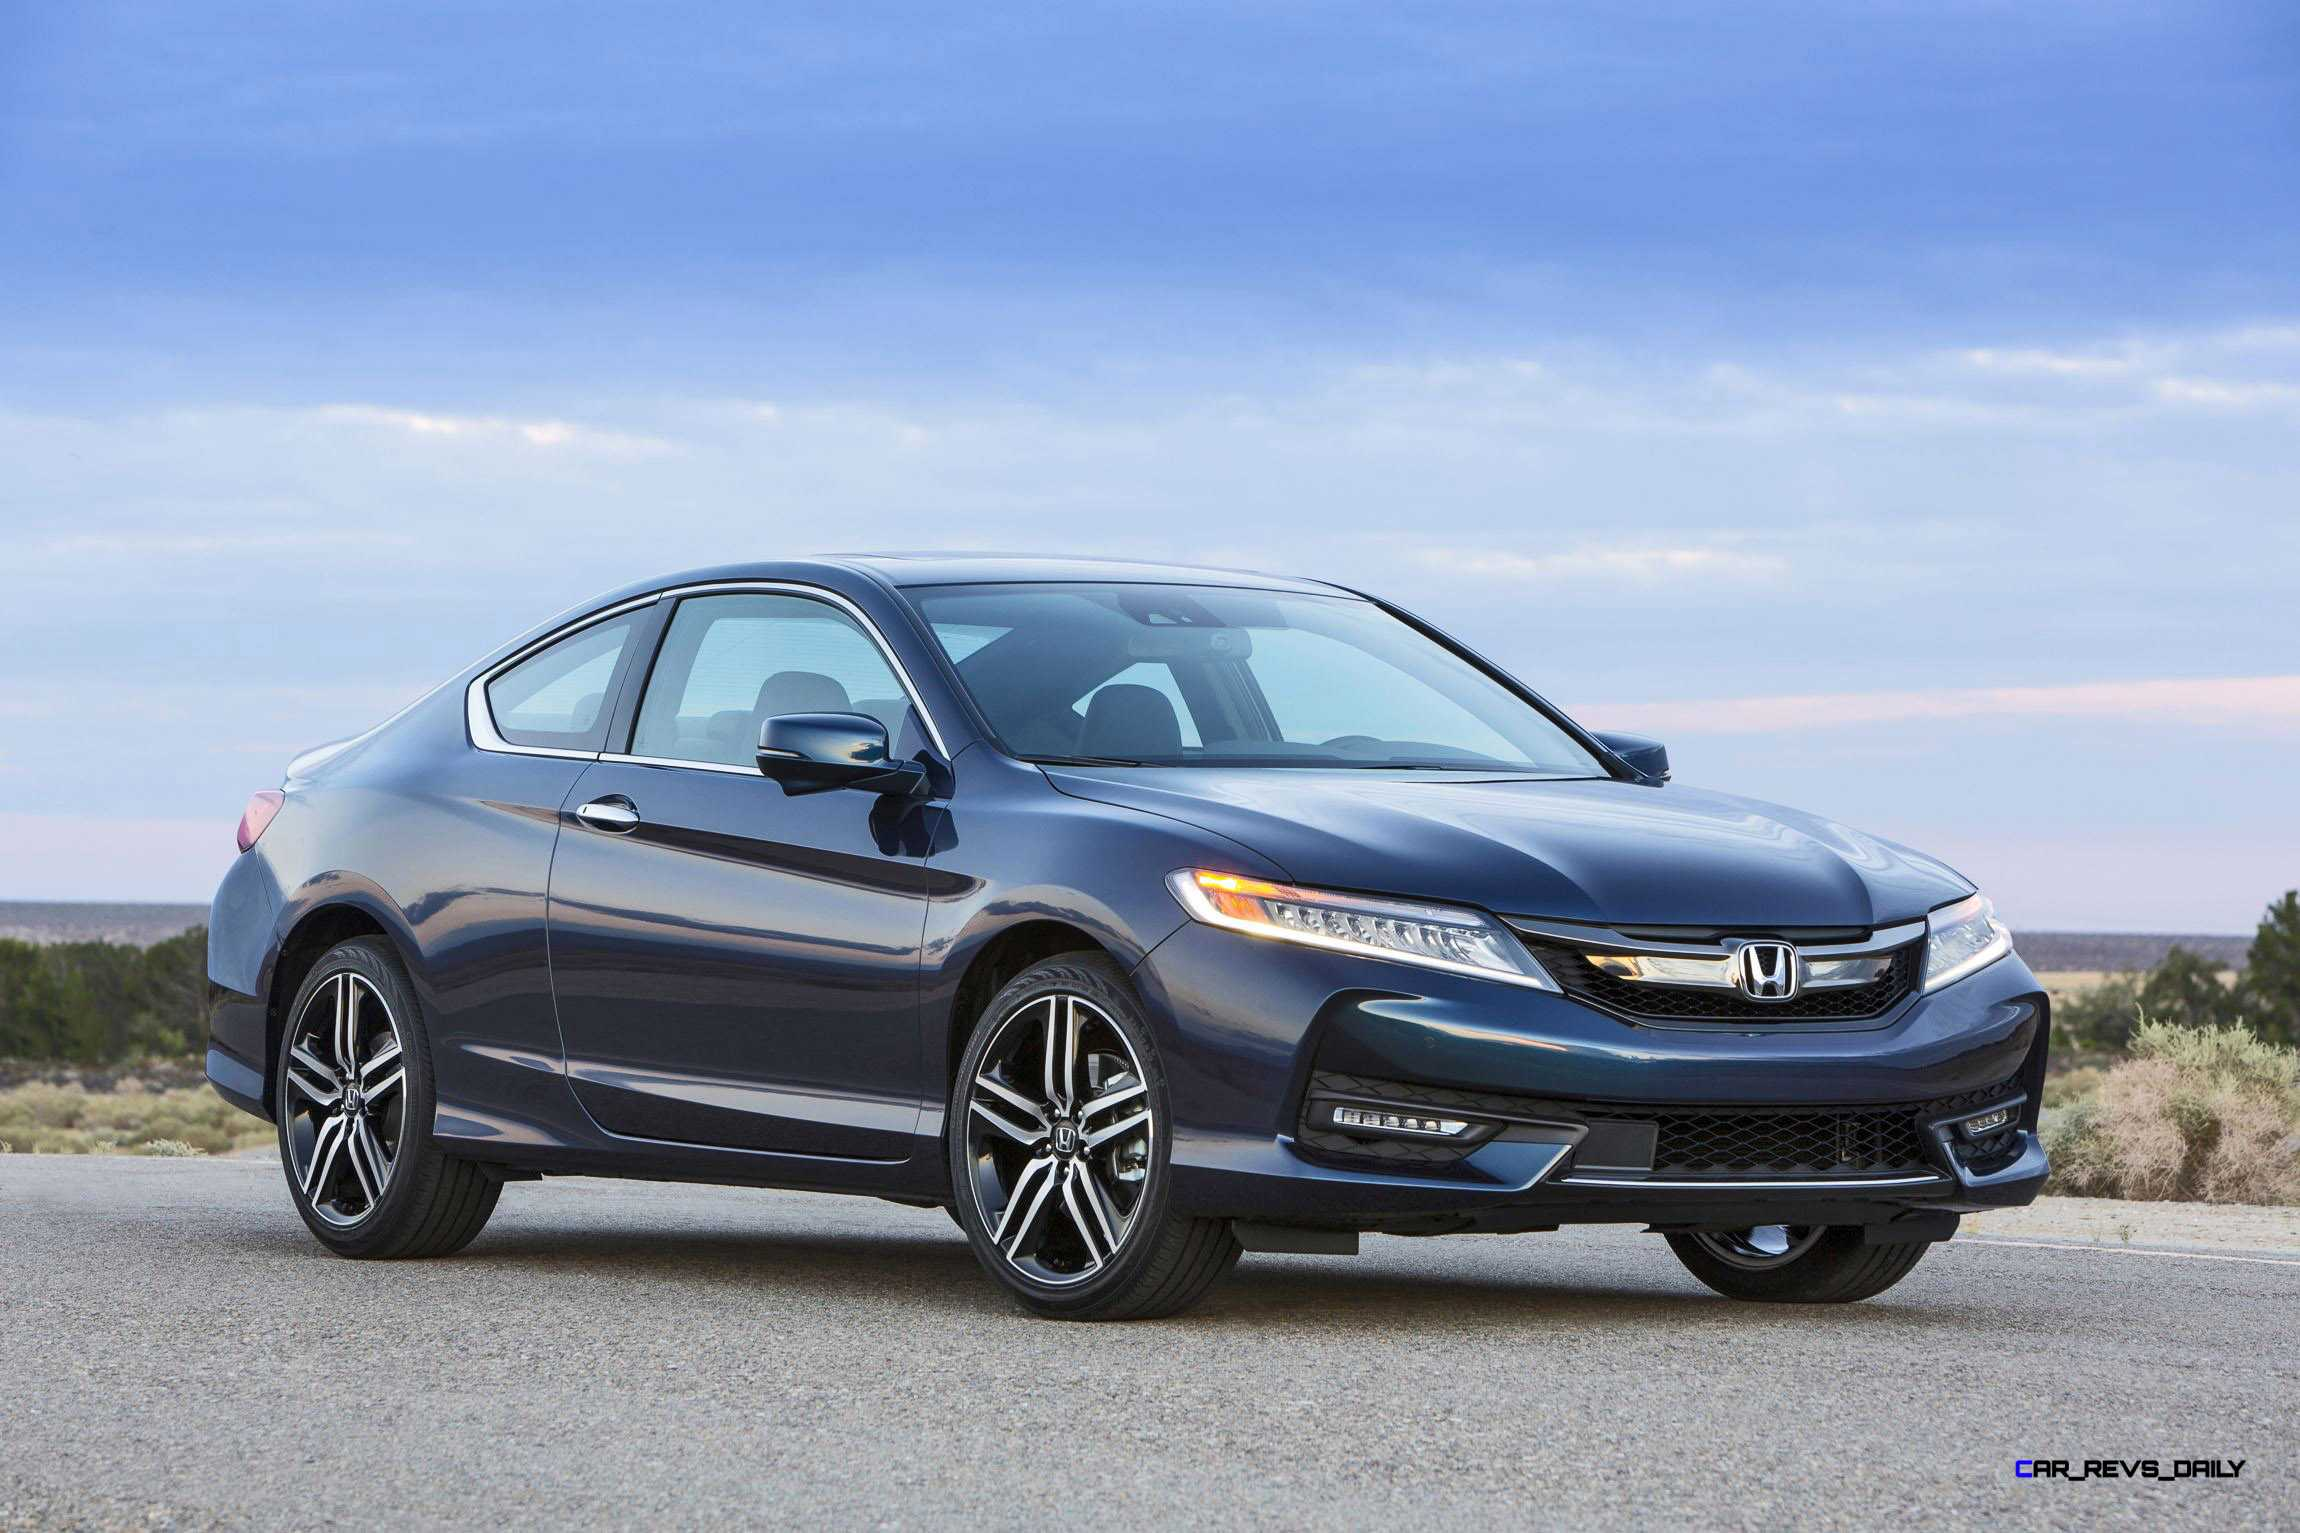 2016 honda accord coupe. Black Bedroom Furniture Sets. Home Design Ideas